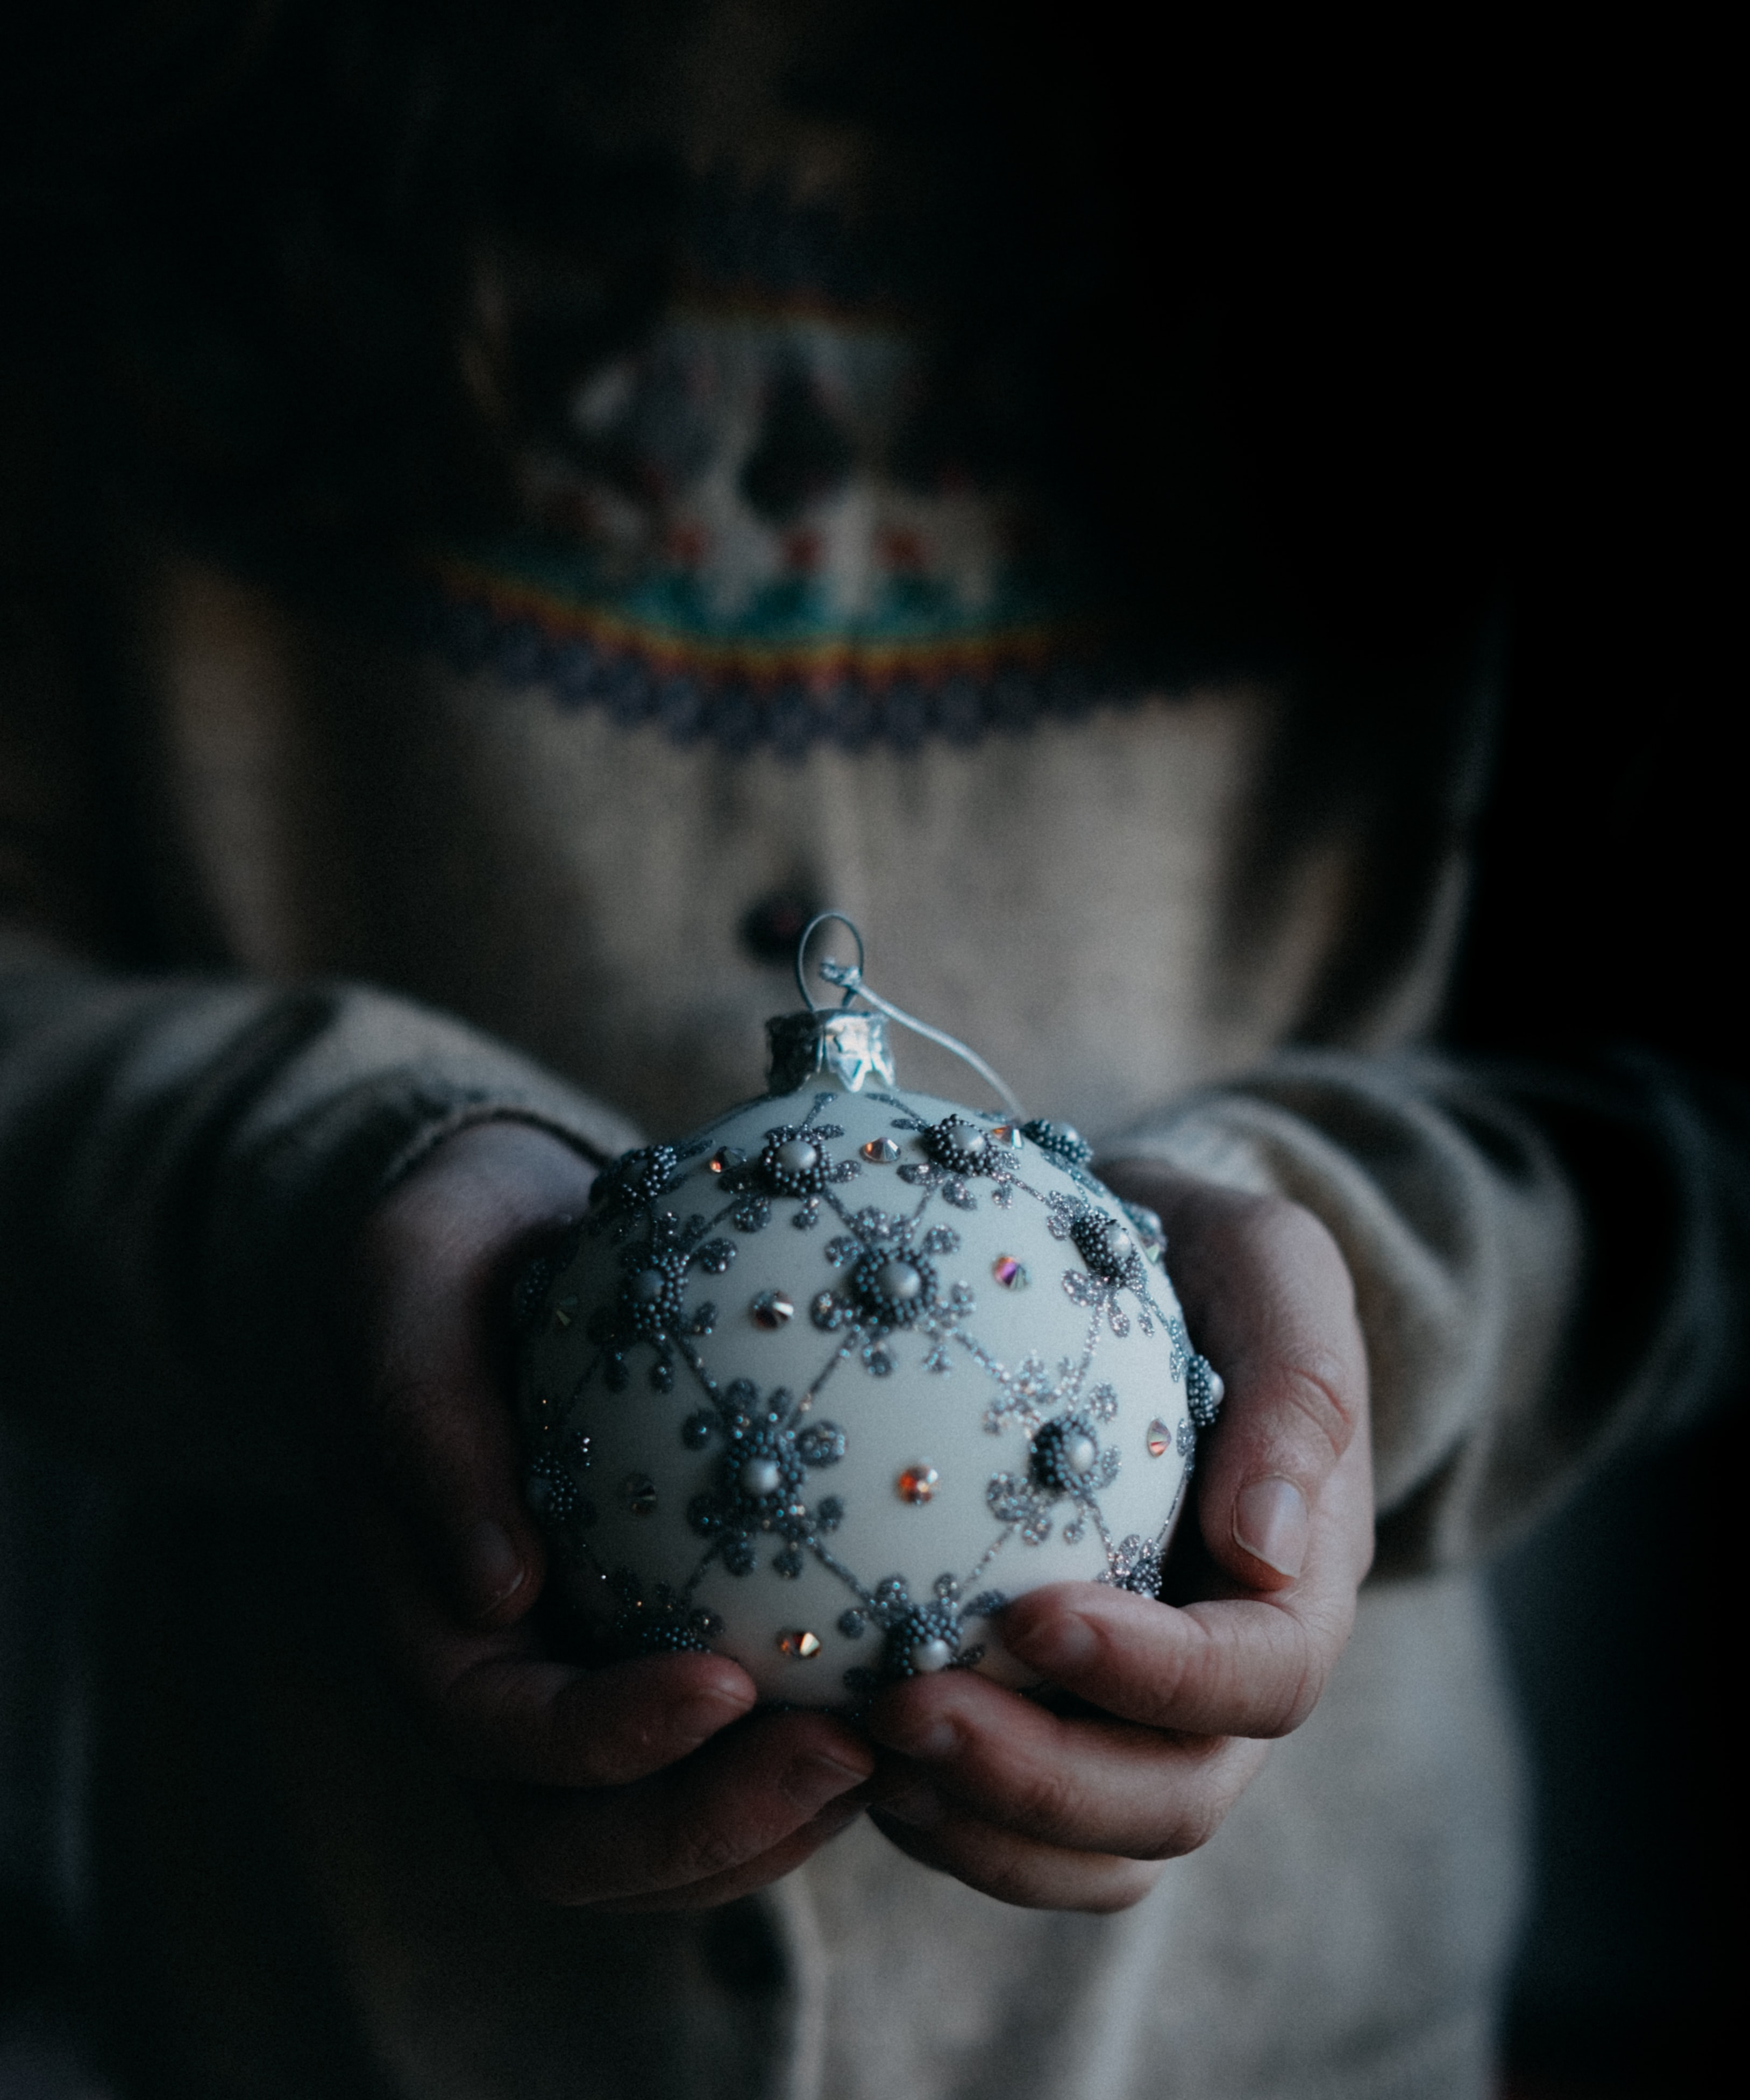 person holding white and grey ornament